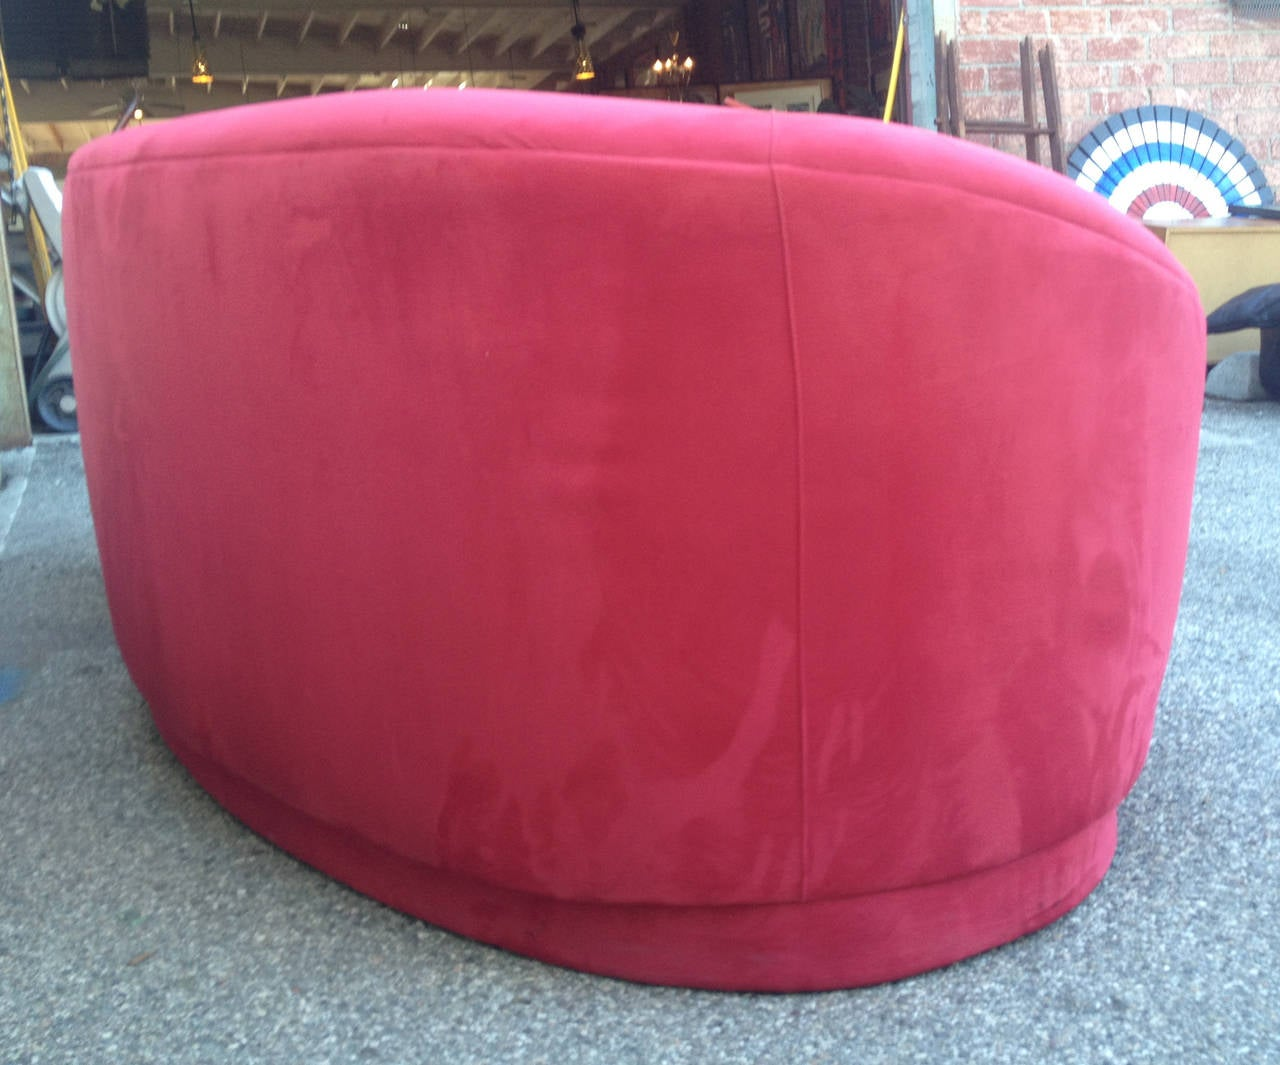 sofa magenta how to fix seat cushions quotcloud quot by vladimir kagan at 1stdibs